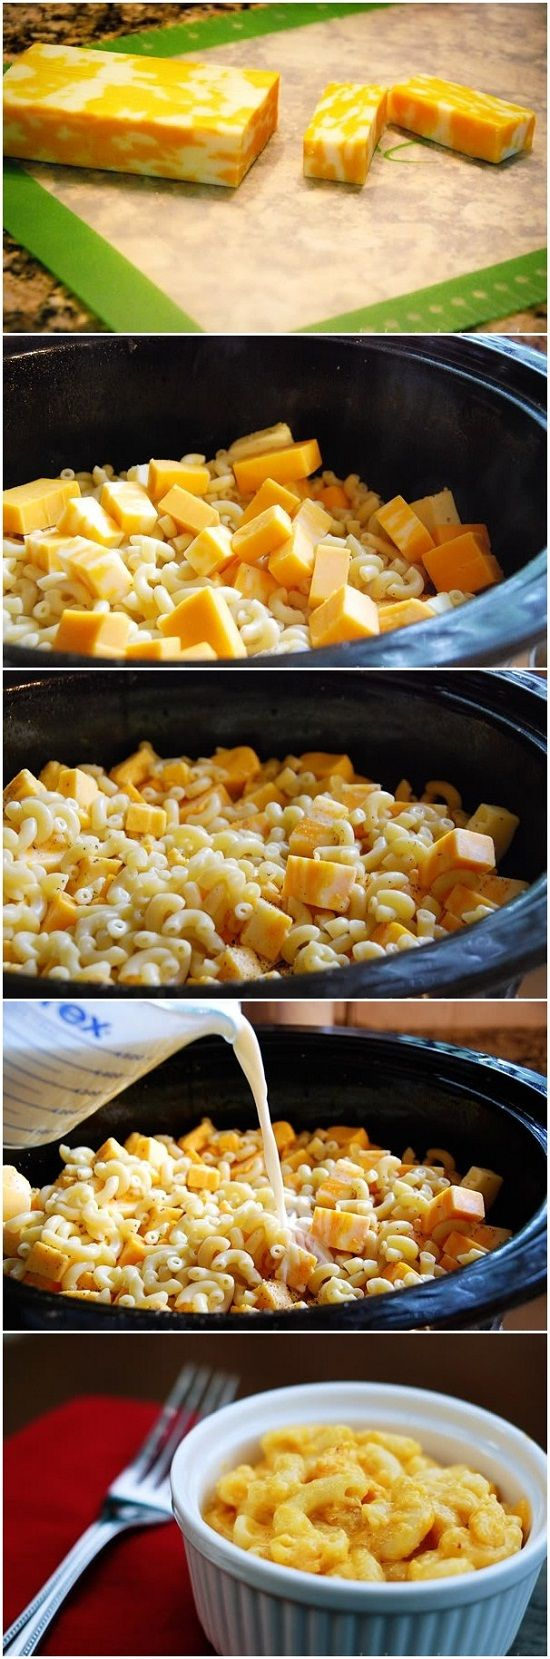 Crockpot Mac & Cheese .. i wonder if this will actually taste good.. if you put cooked mac in the crockpot and let it cook on low